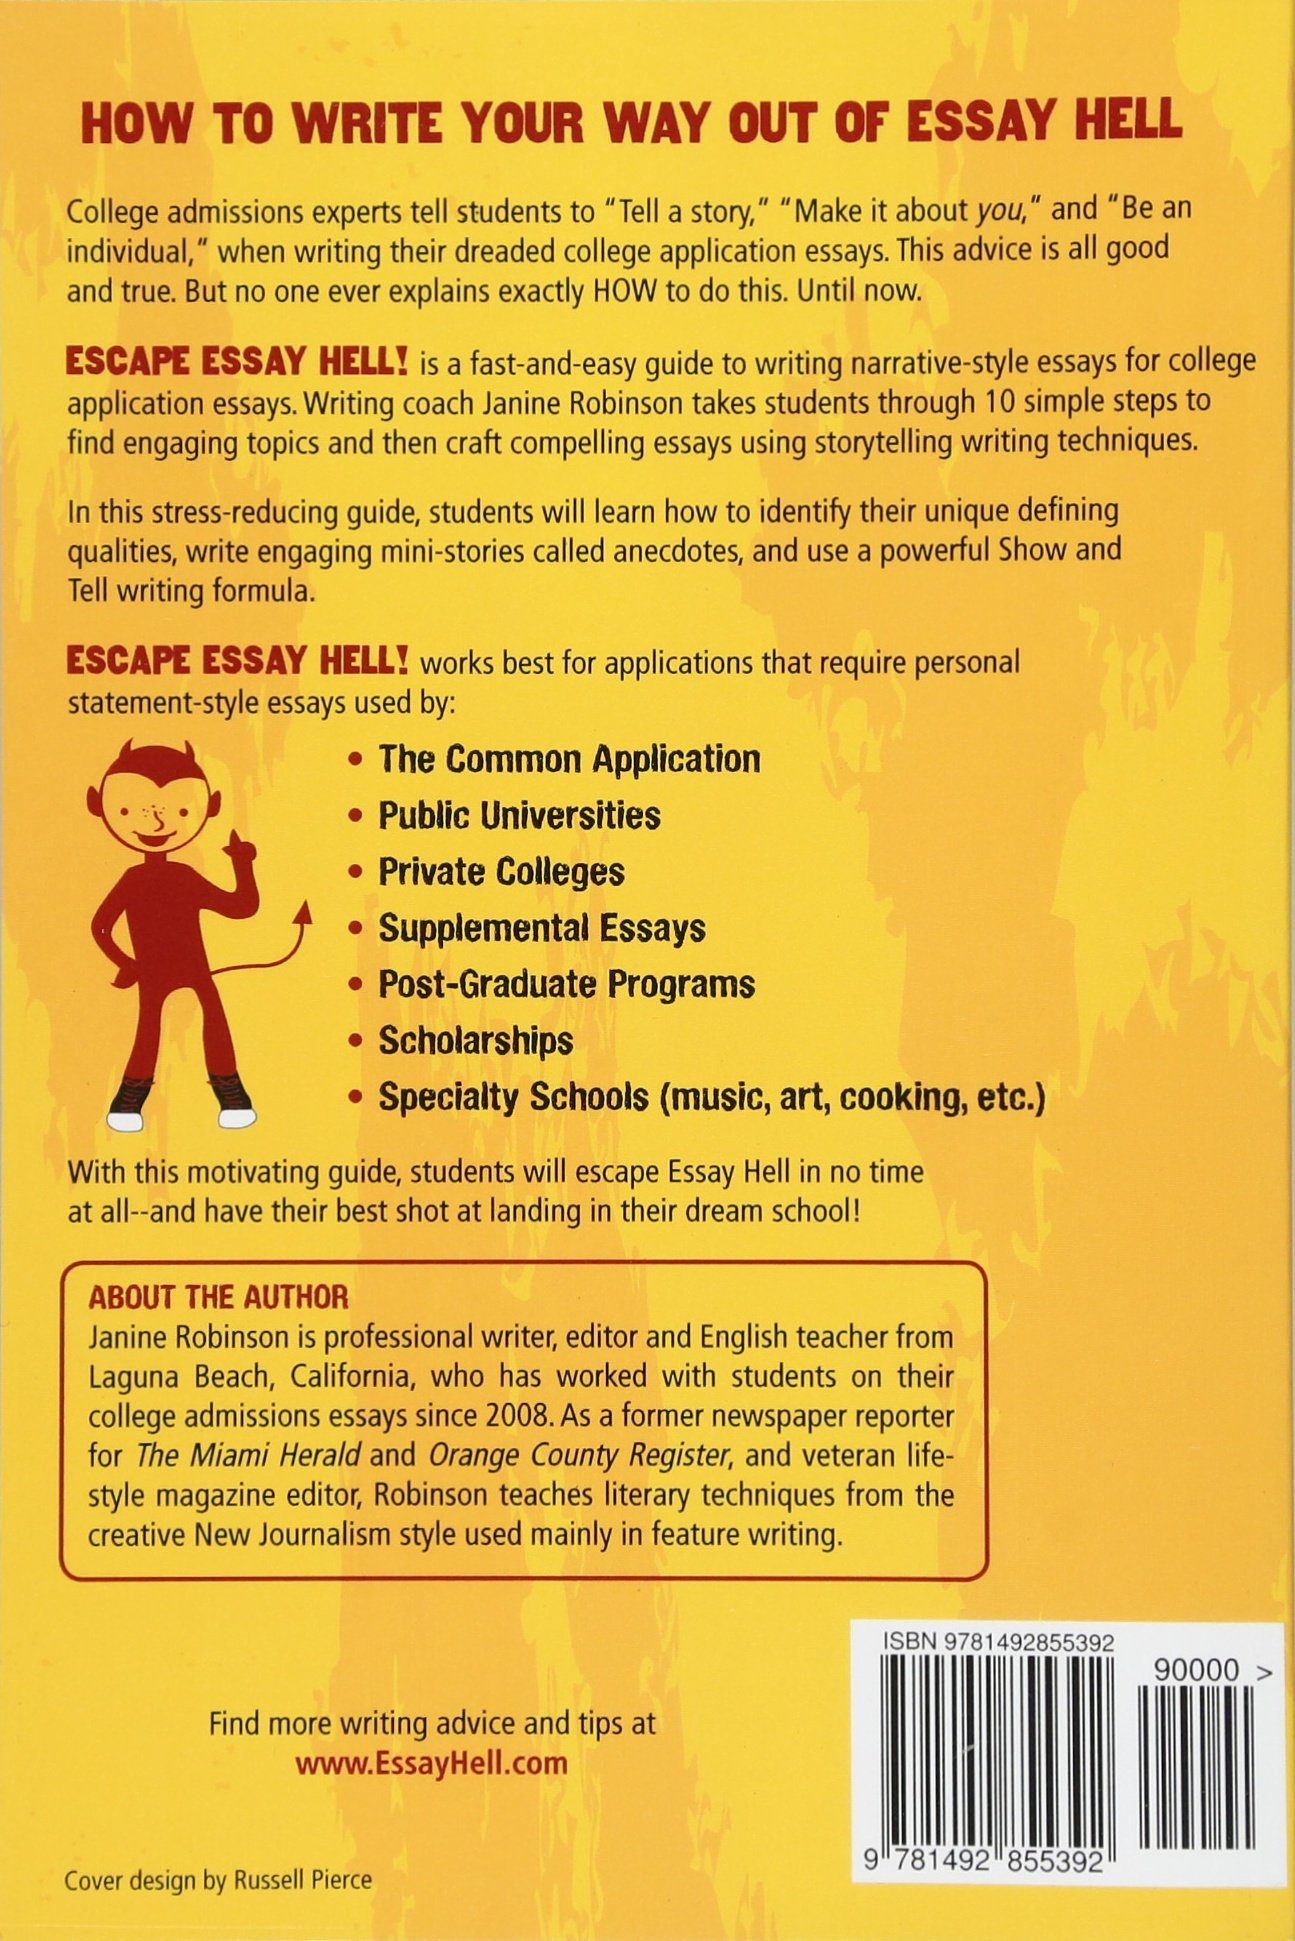 Escape Essay Hell A Stepbystep Guide To Writing Narrative  Escape Essay Hell A Stepbystep Guide To Writing Narrative College  Application Essays Janine W Robinson  Amazoncom Books